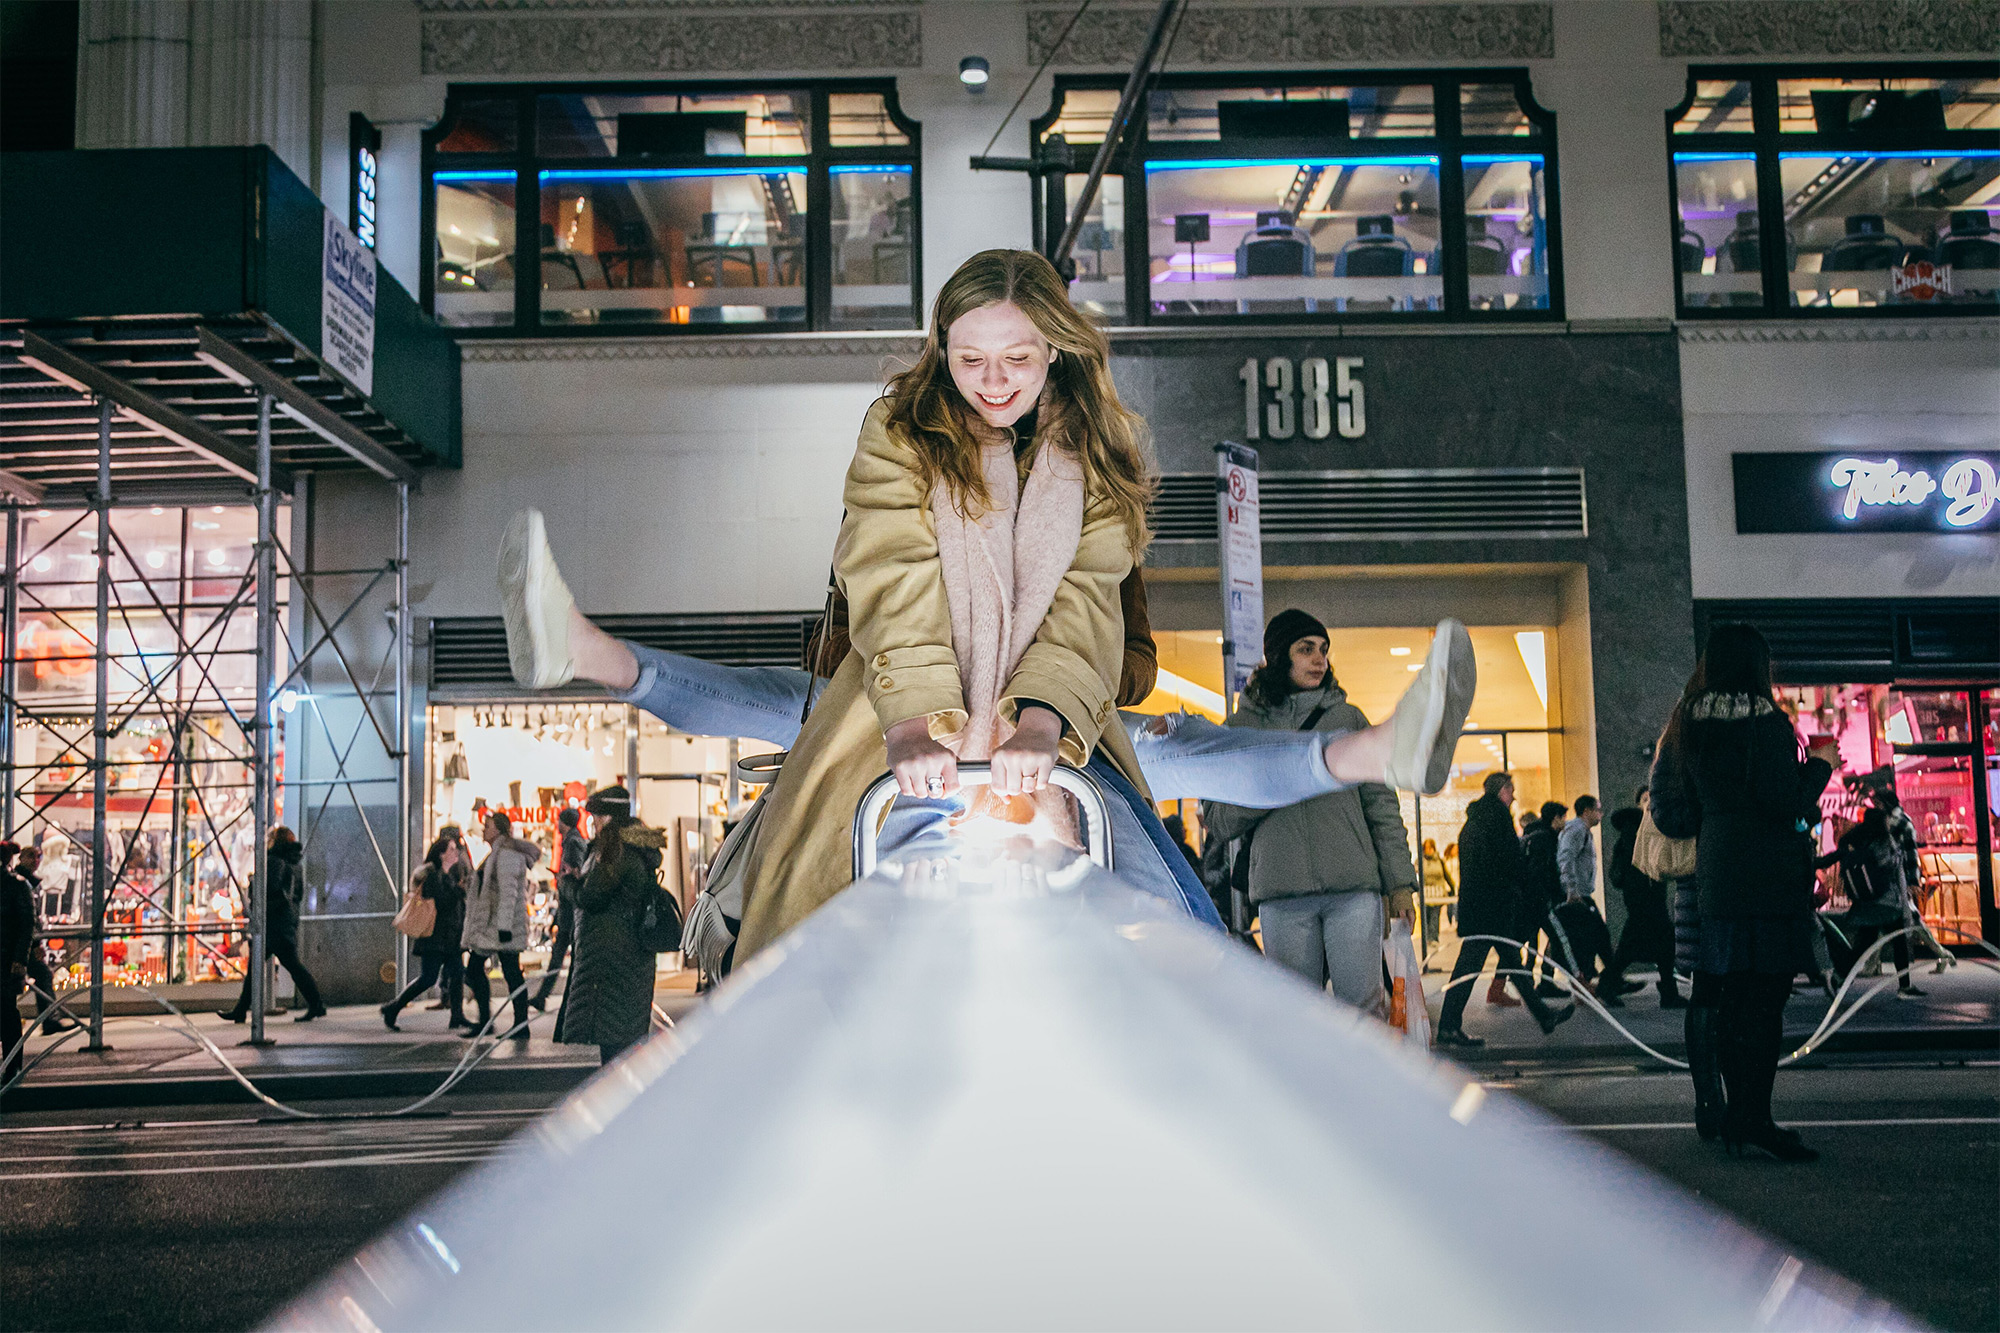 Giant Seesaws Transform New York City's Garment District into Light-Filled Urban Playground